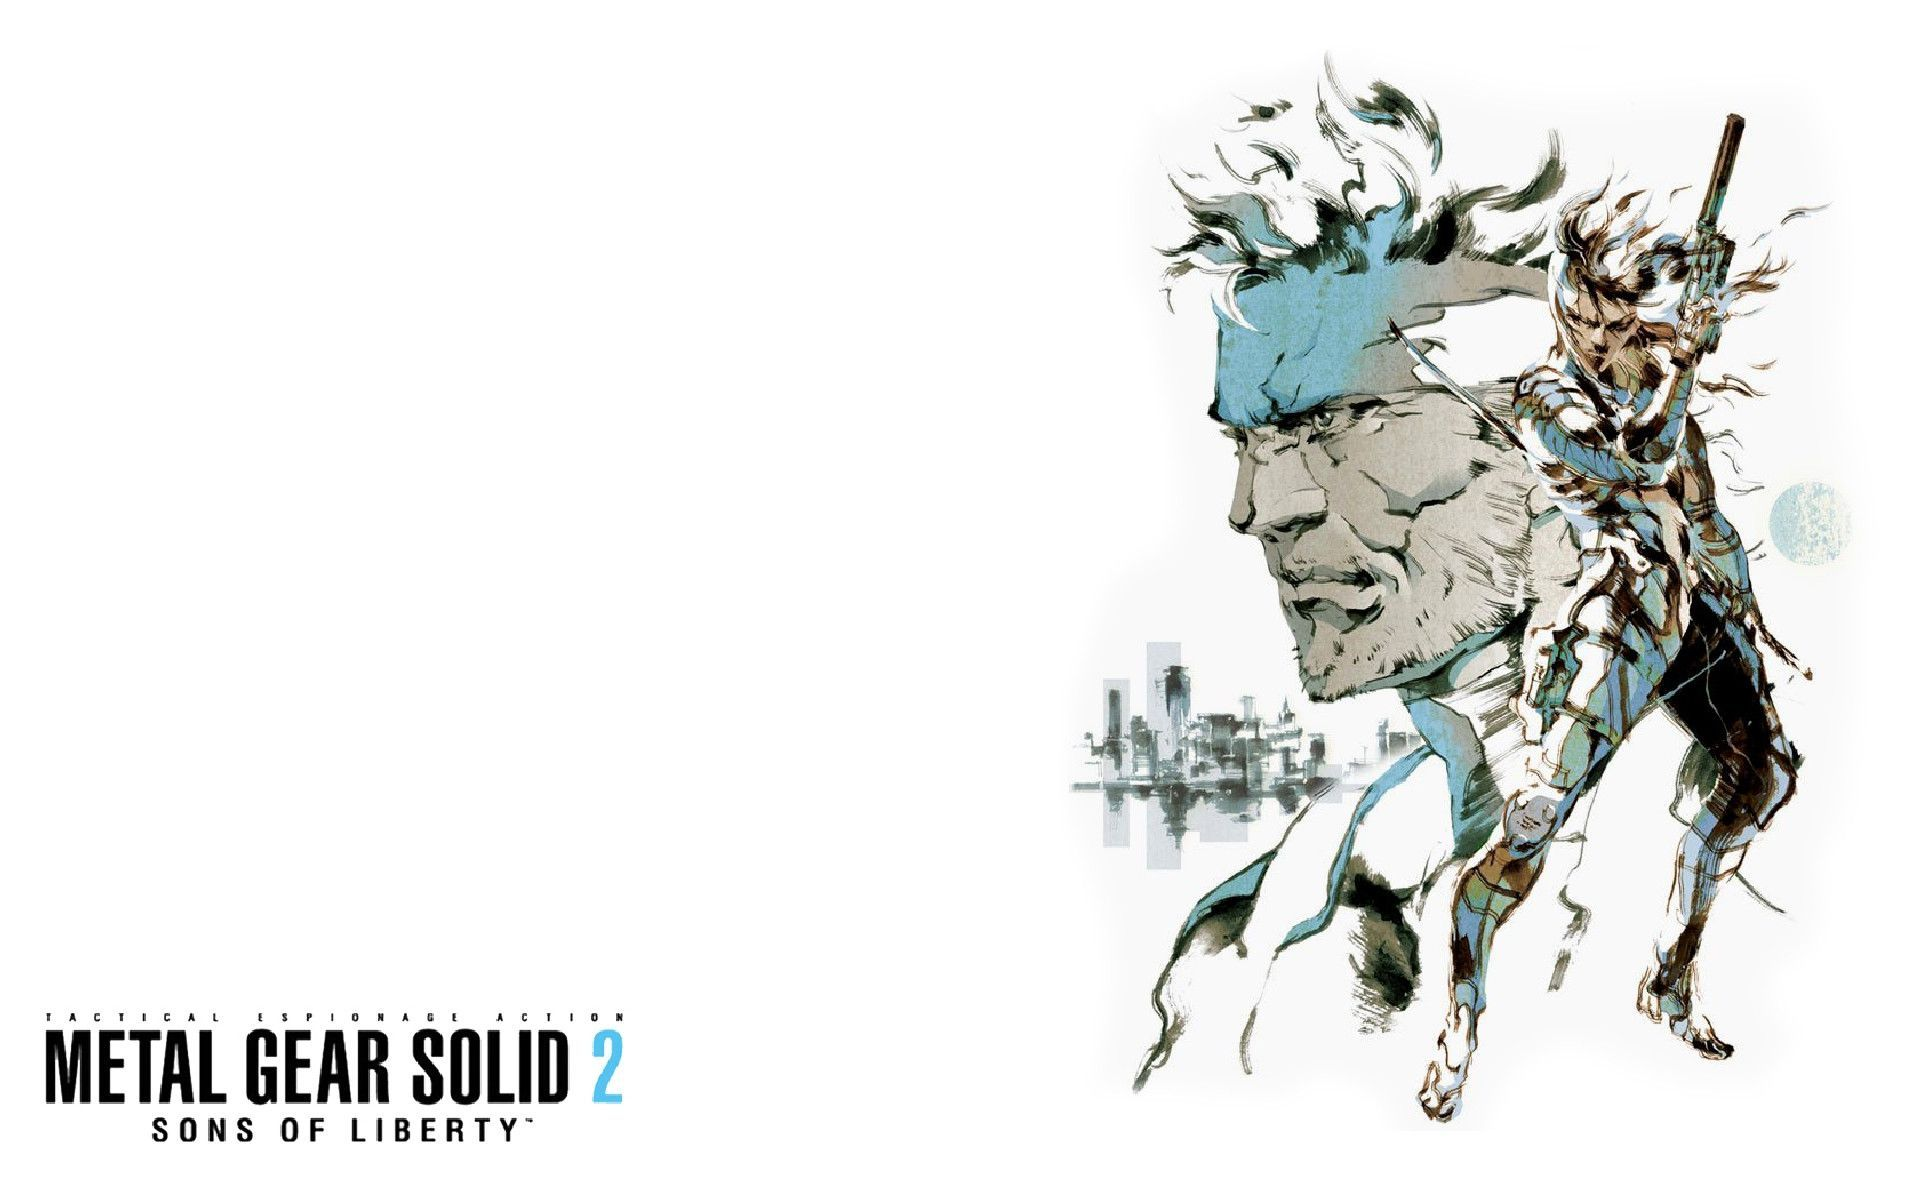 Metal Gear Solid 2 Wallpapers